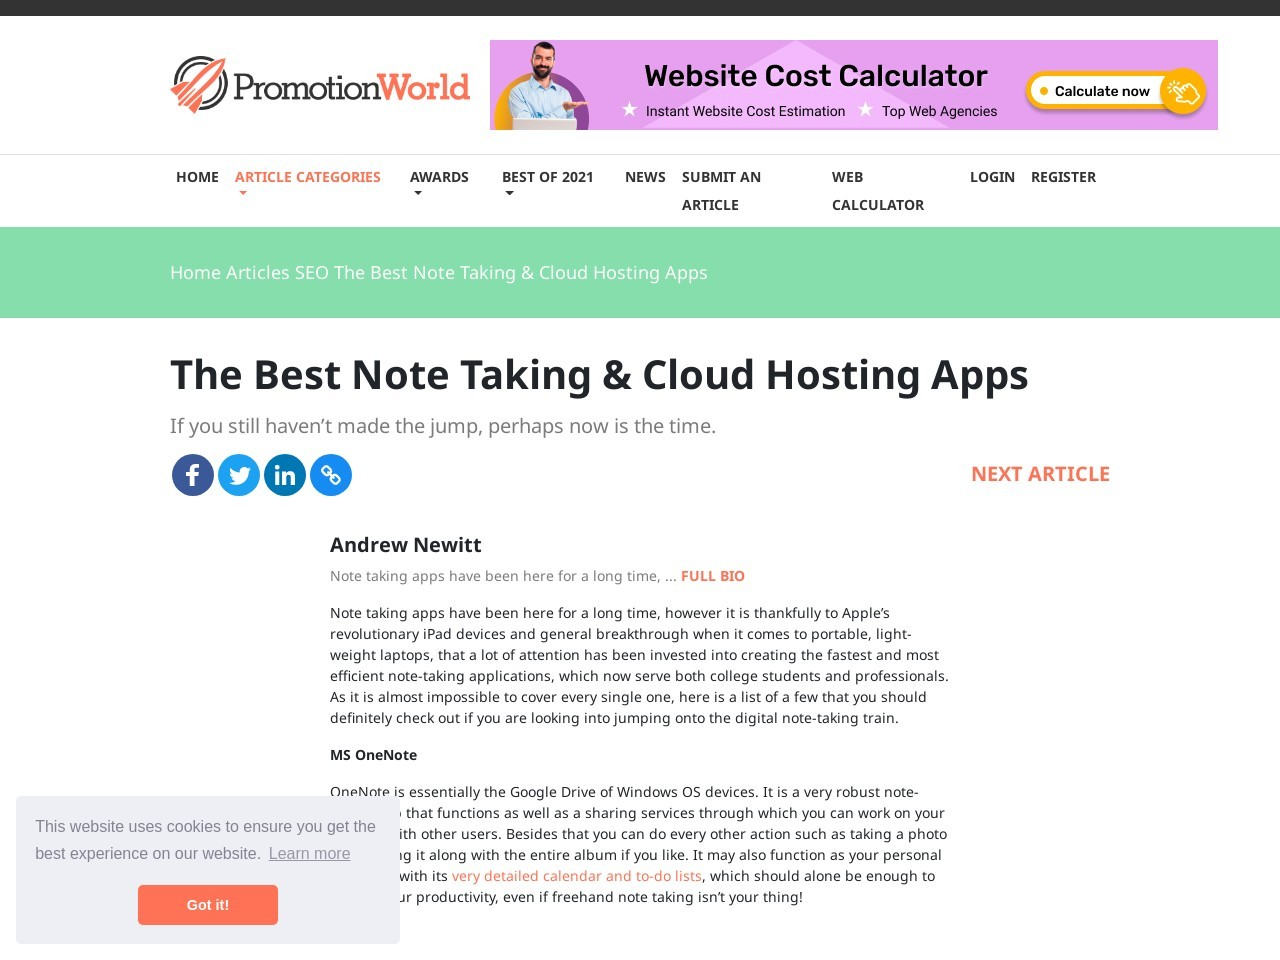 The Best Note Taking & Cloud Hosting Apps